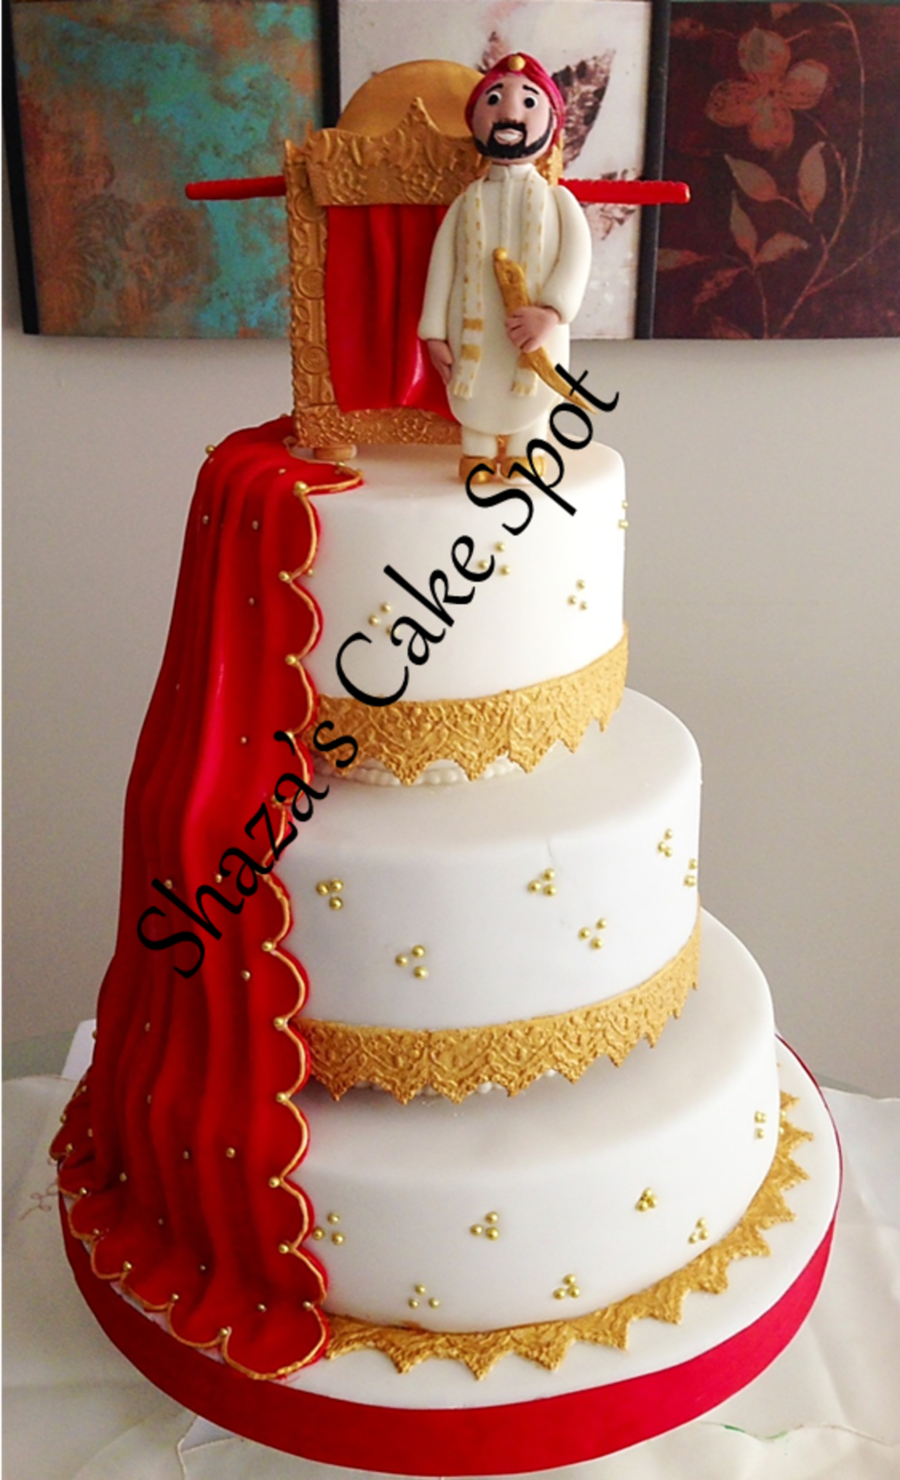 wedding cakes red amp gold wedding cake indian theme cakecentral 25346